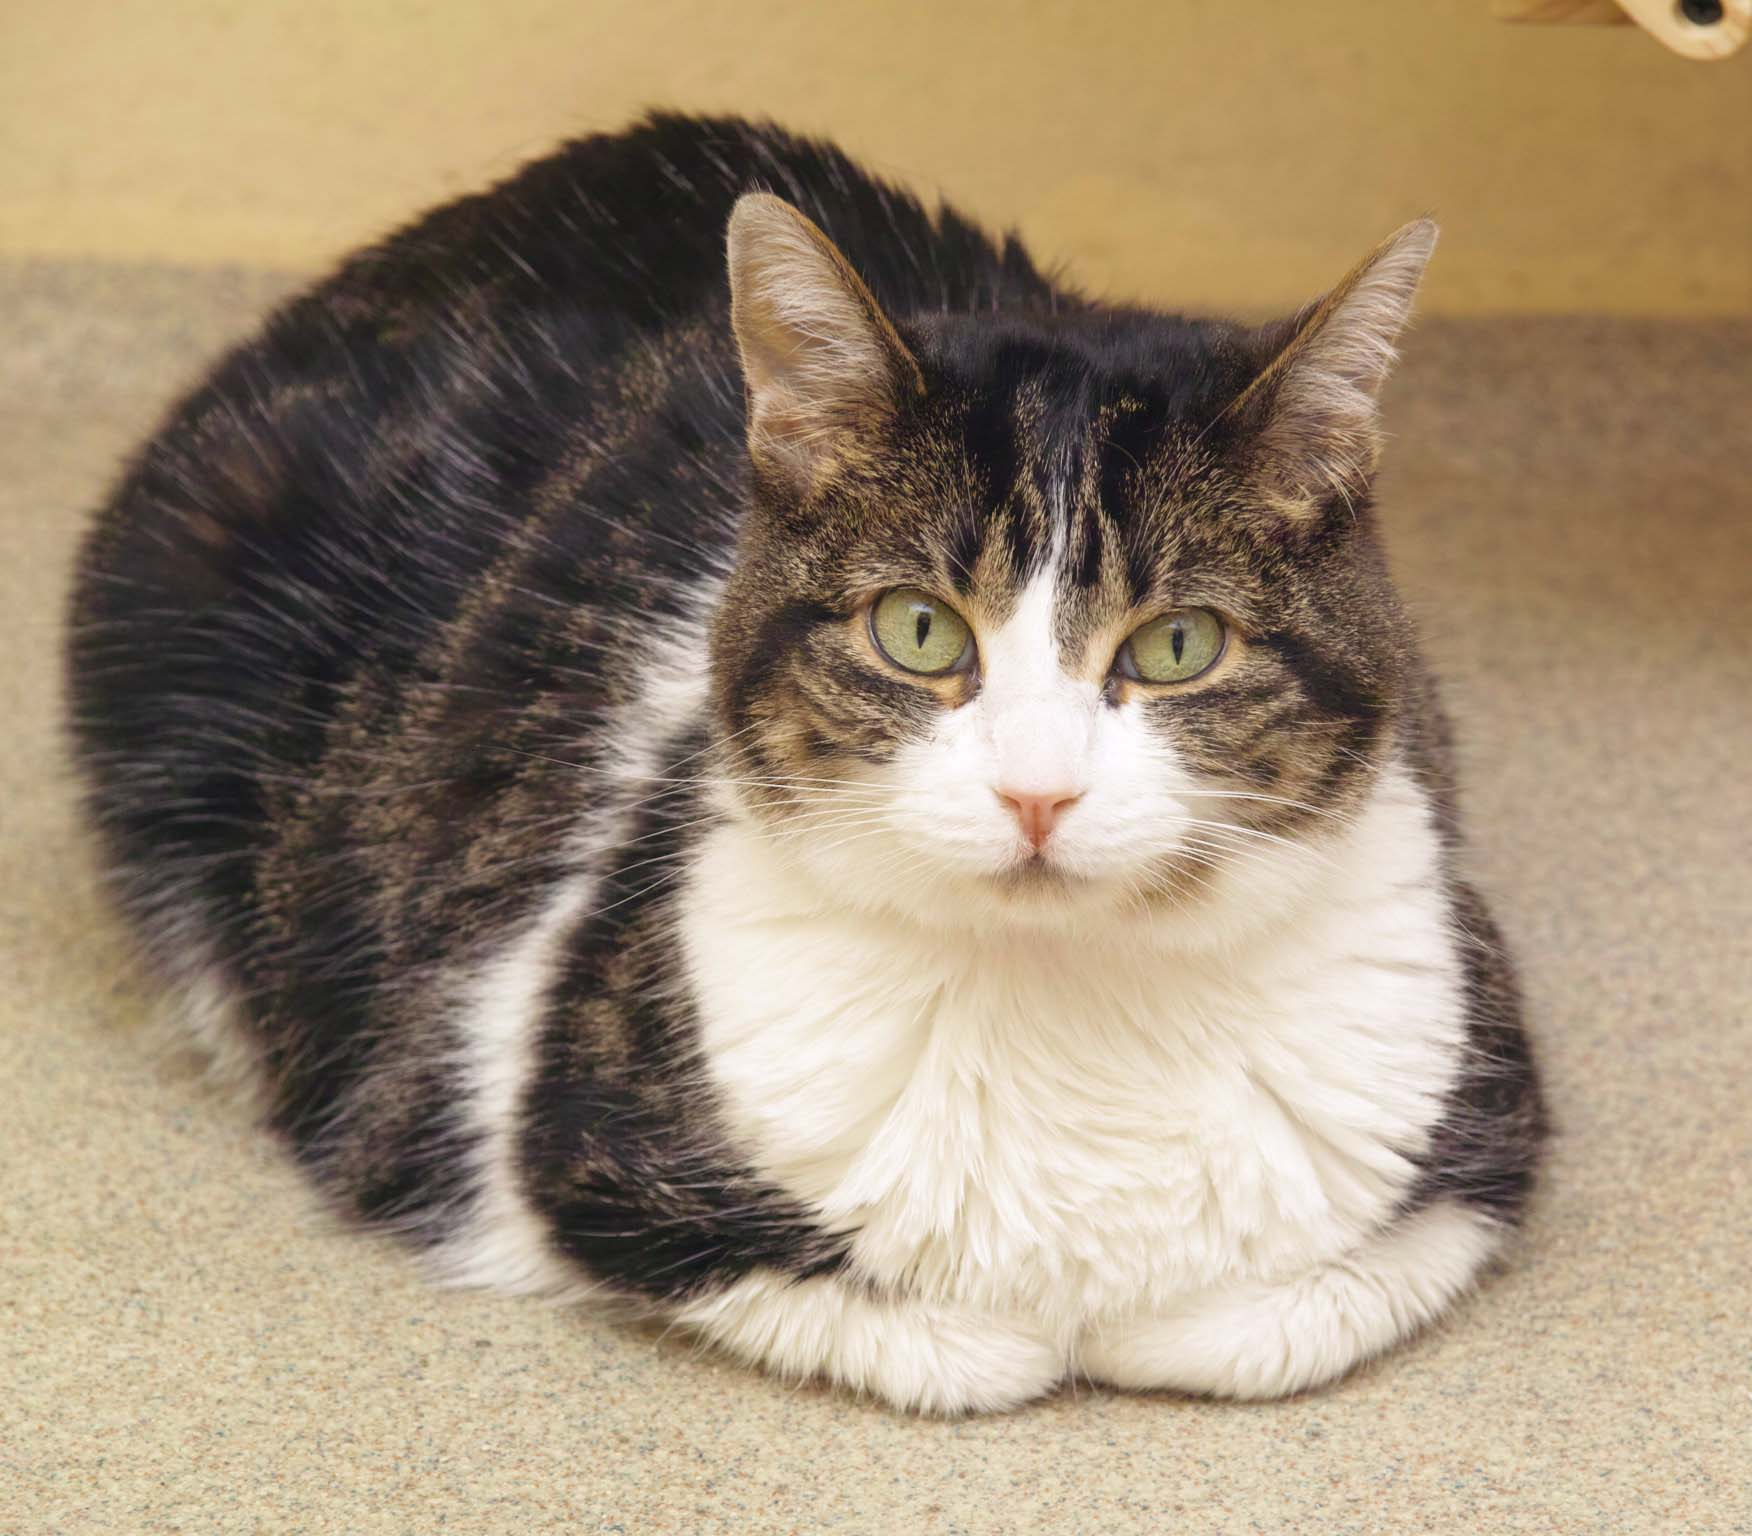 Helga is an adult cat who loves to lounge around!She came to HAWS as a stray after an adventure outdoors. No one came to reclaim her; she is now up for adoption.